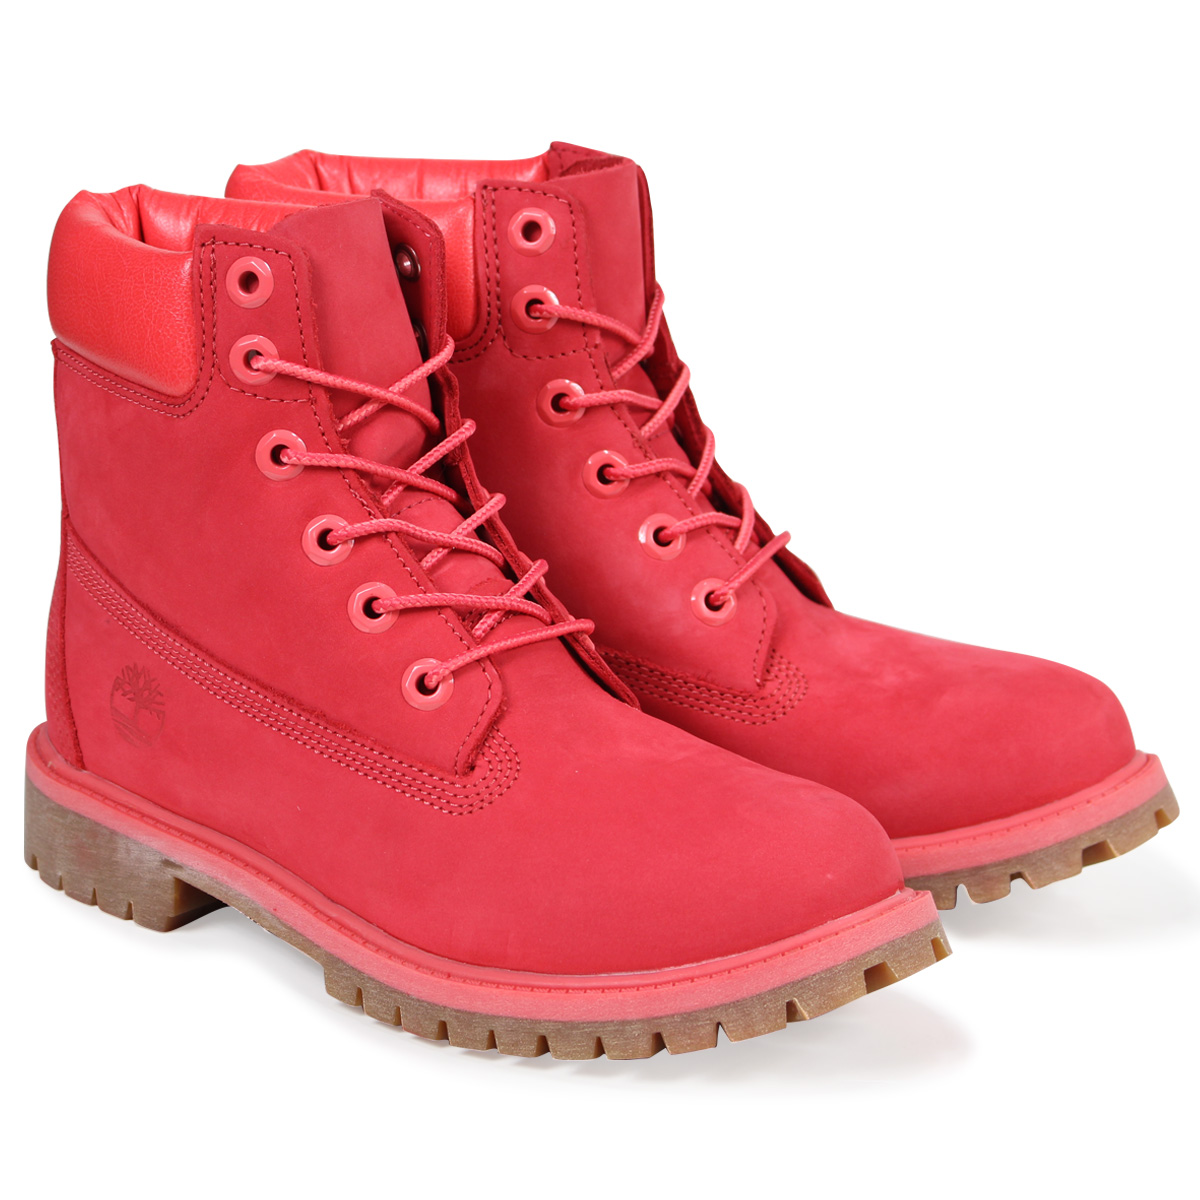 Whats Up Sports Timberland Junior 6inch Waterproof Boot